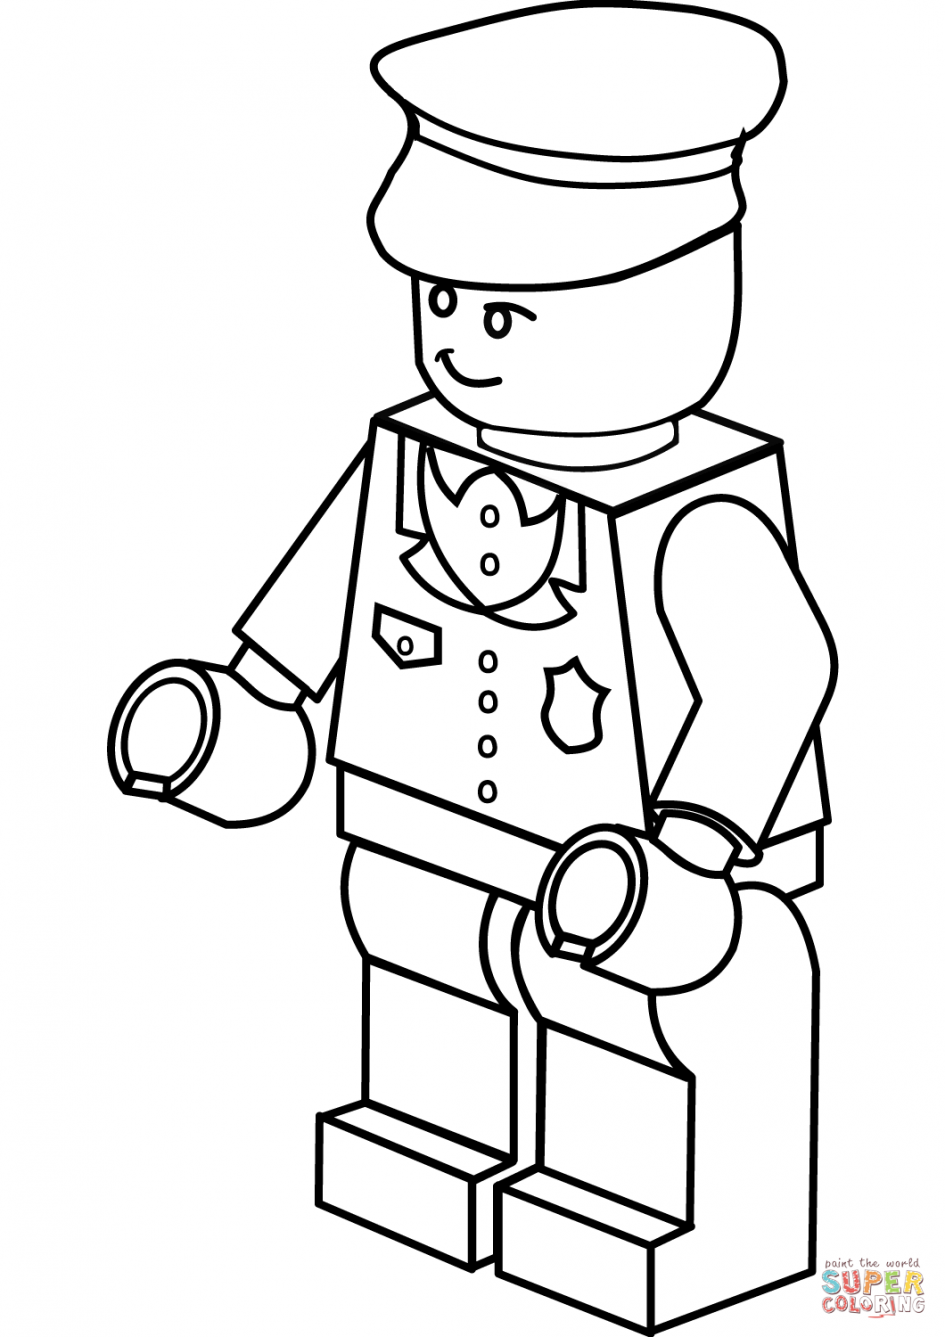 945x1337 Download Coloring Pages. Police Officer Coloring Pages Police